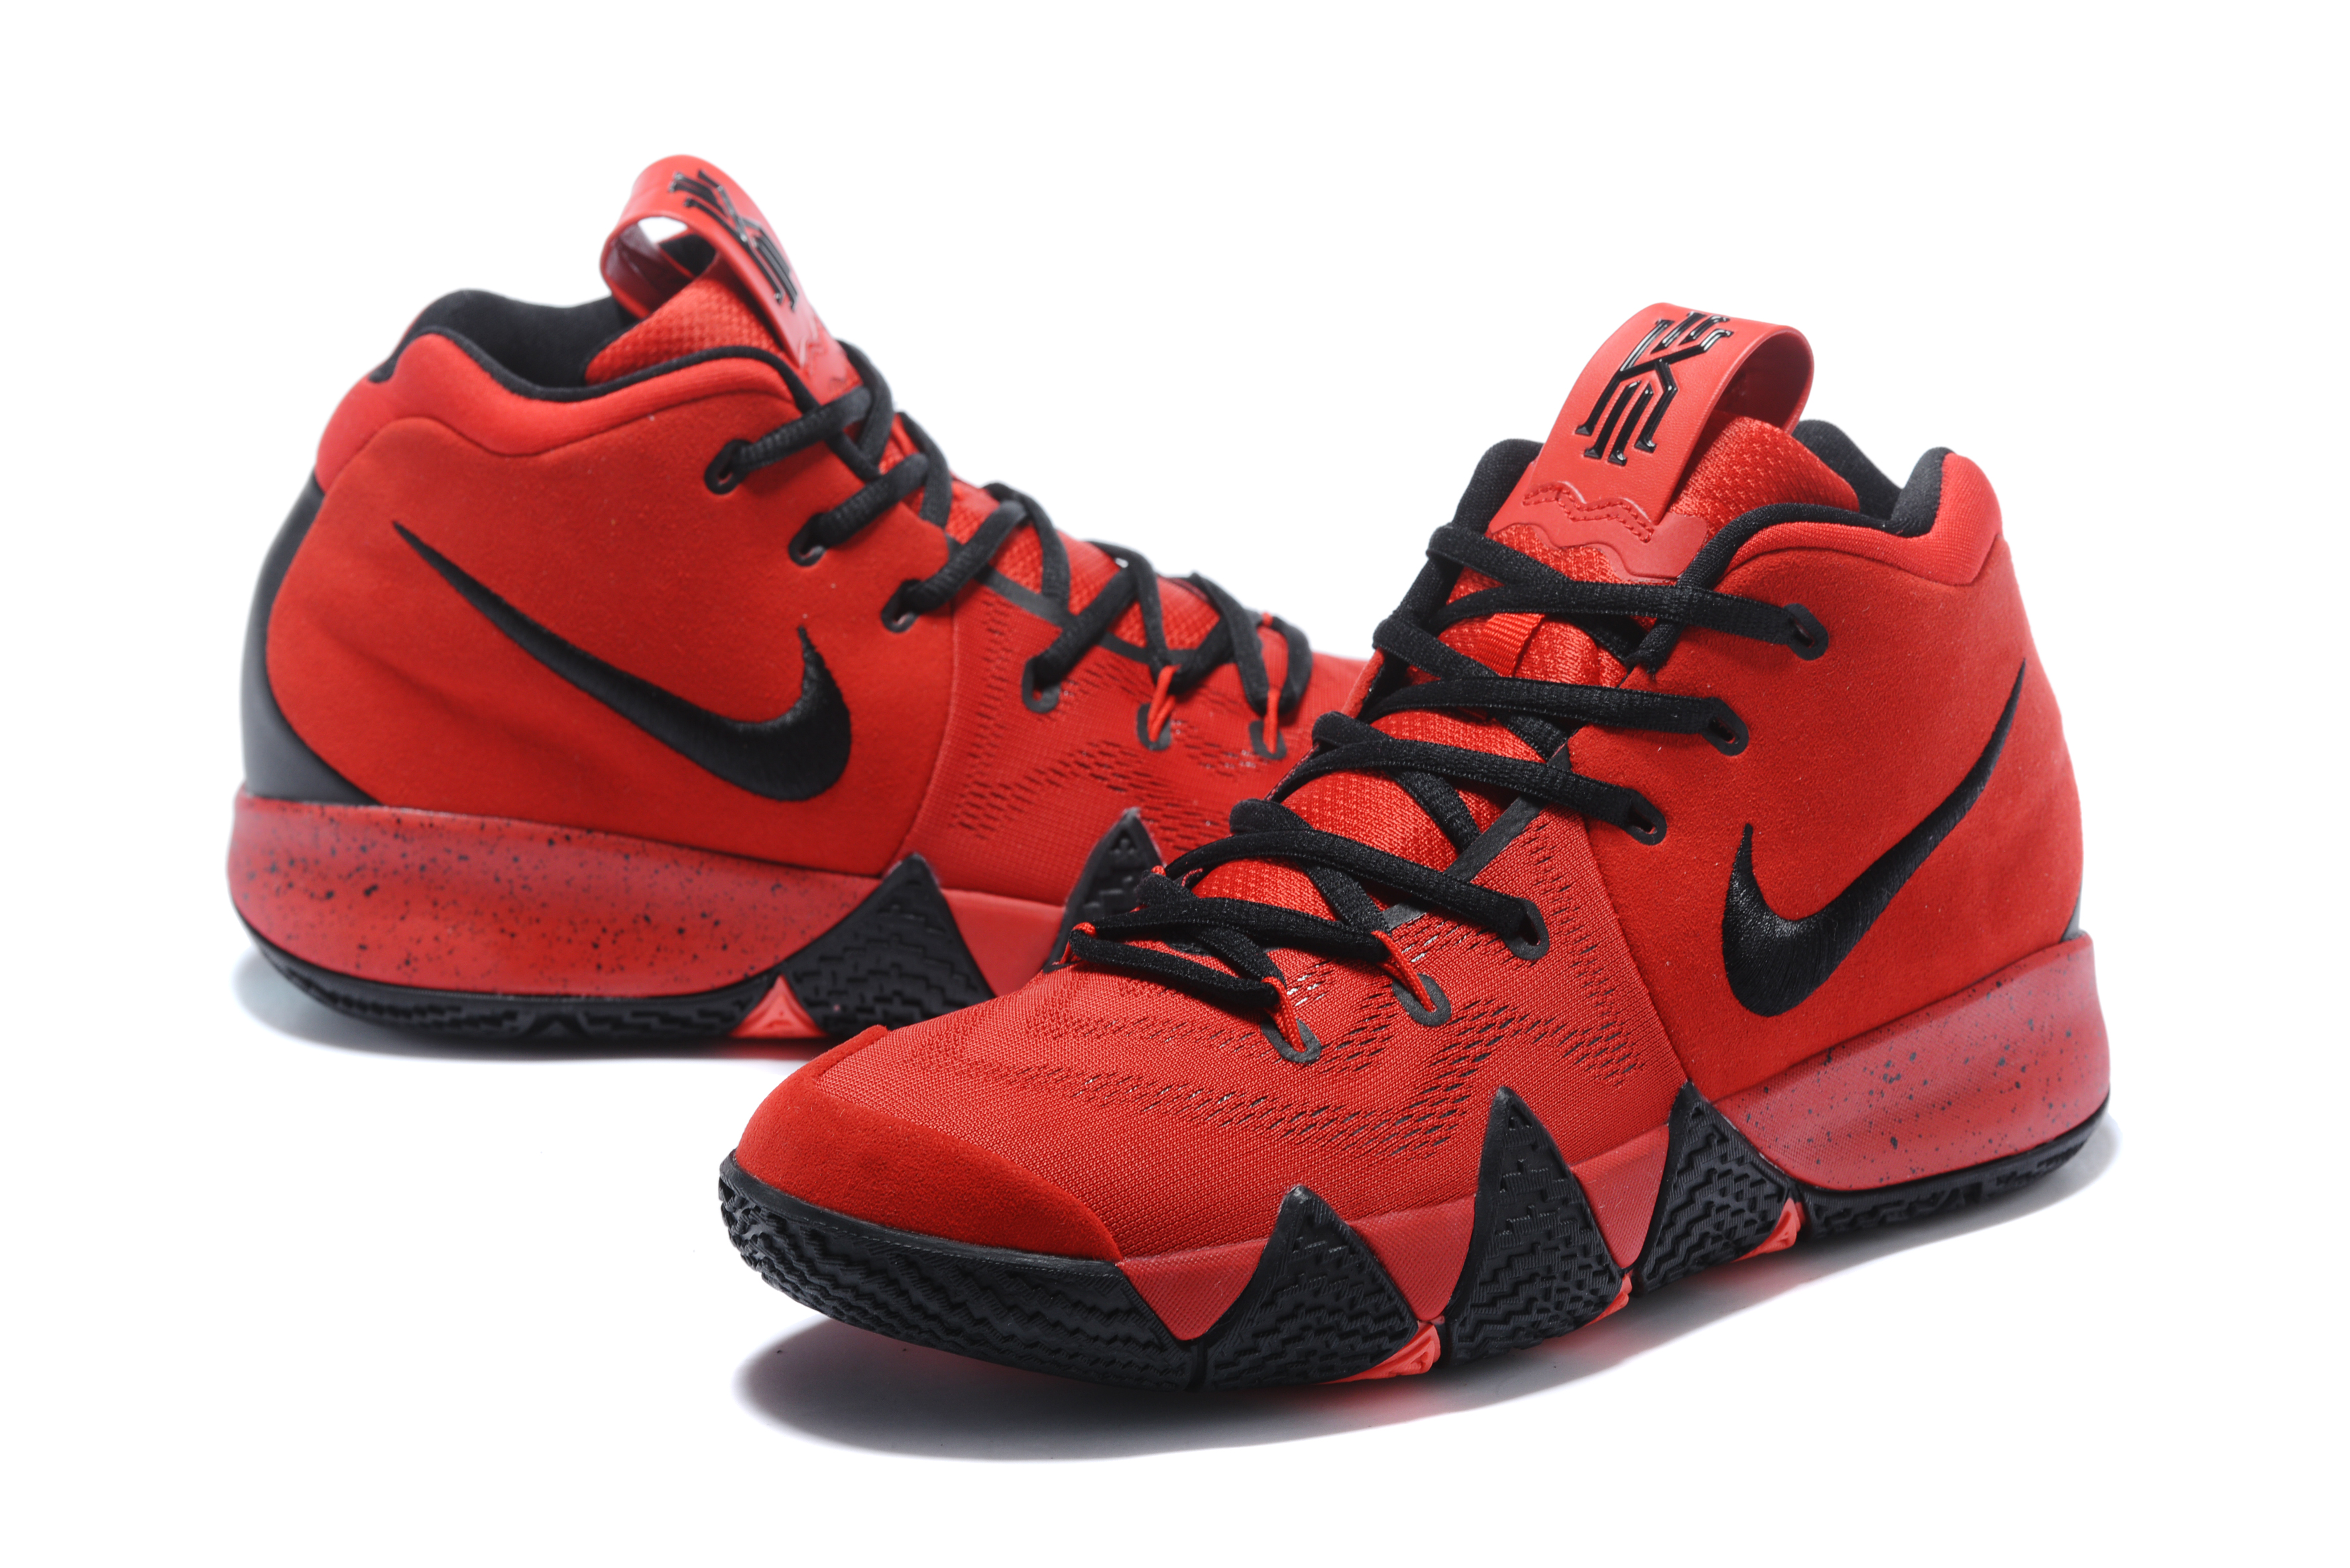 Nike Kyrie Irving 4 Red Black Shoes